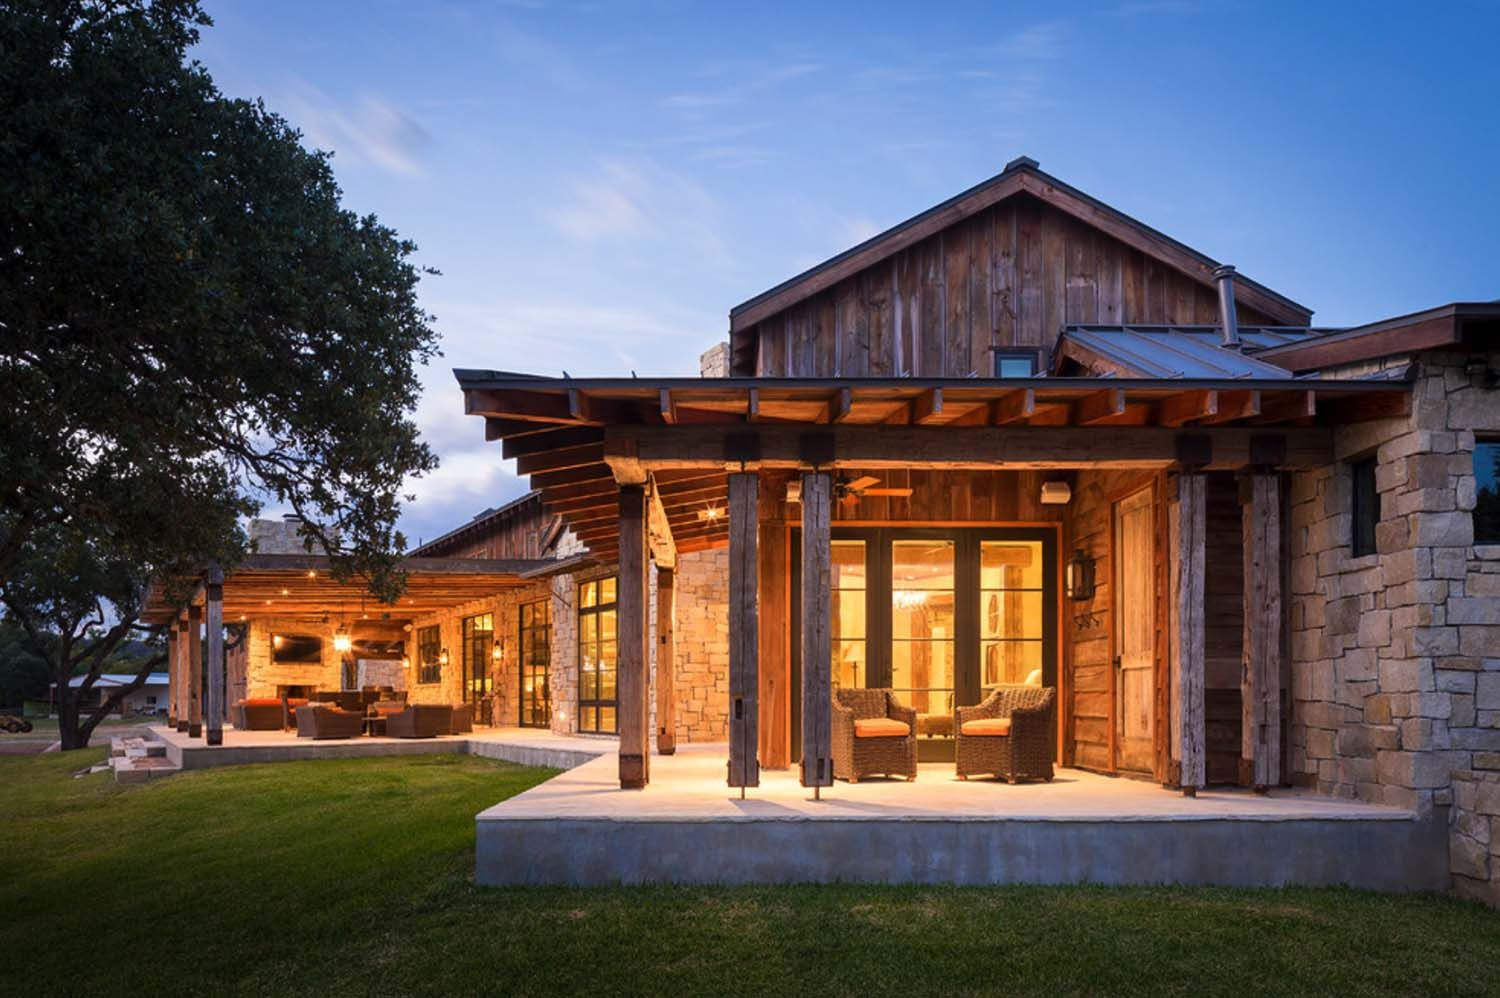 Modern rustic barn style retreat in texas hill country Hill country home designs